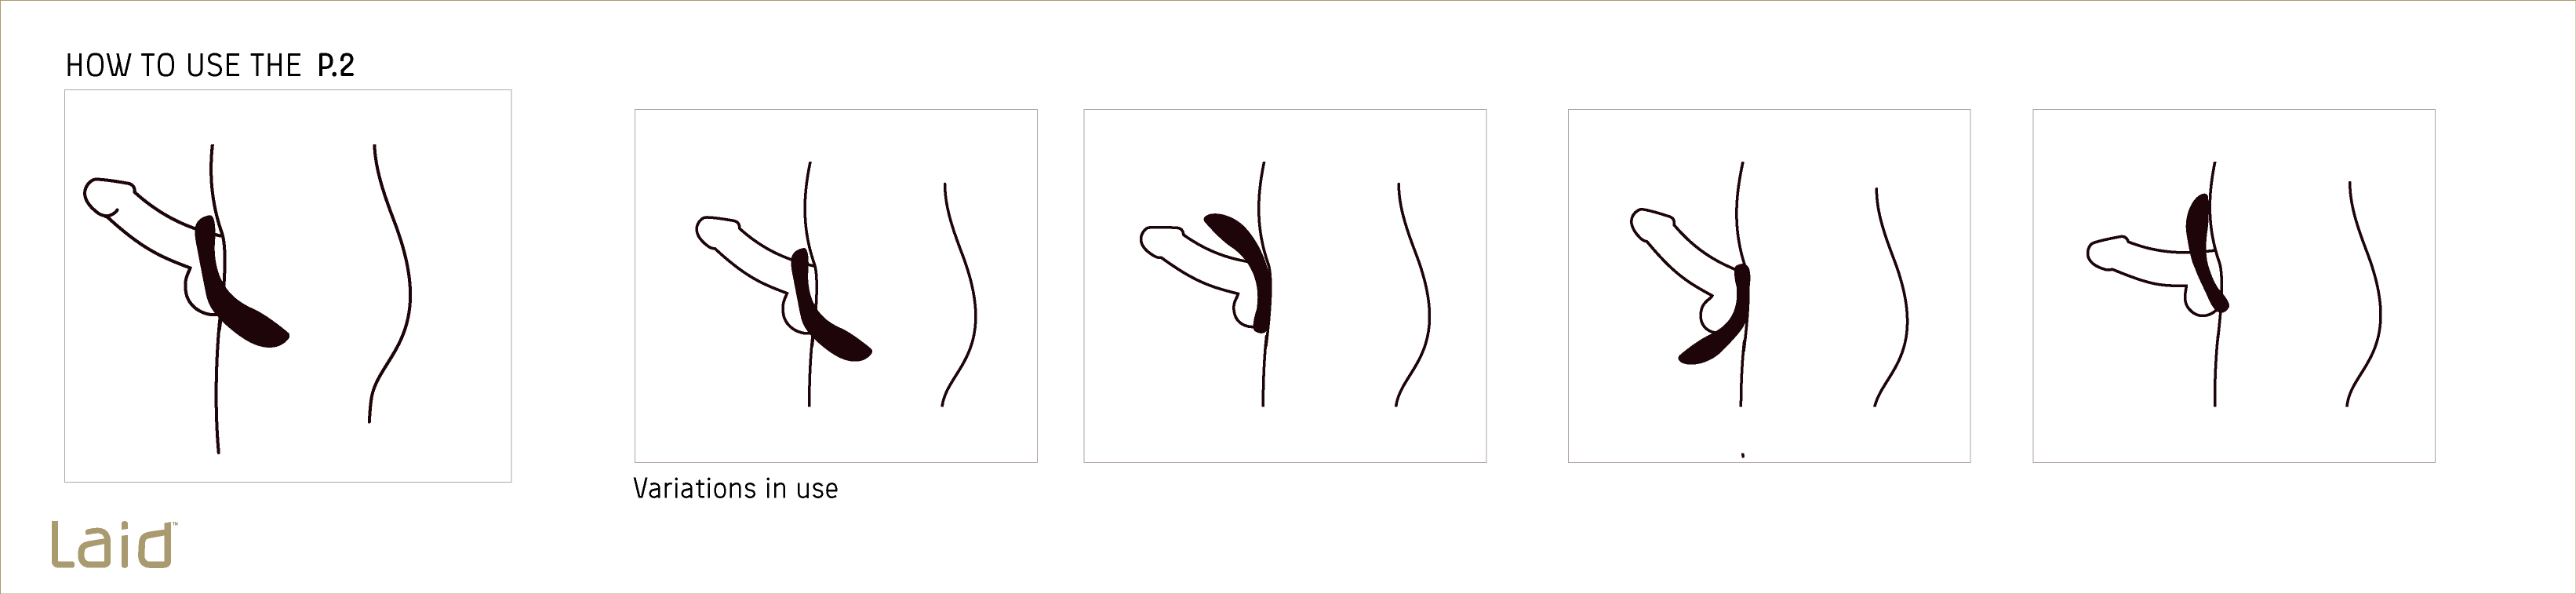 laid-p2-penis-ring-how-to-use.png